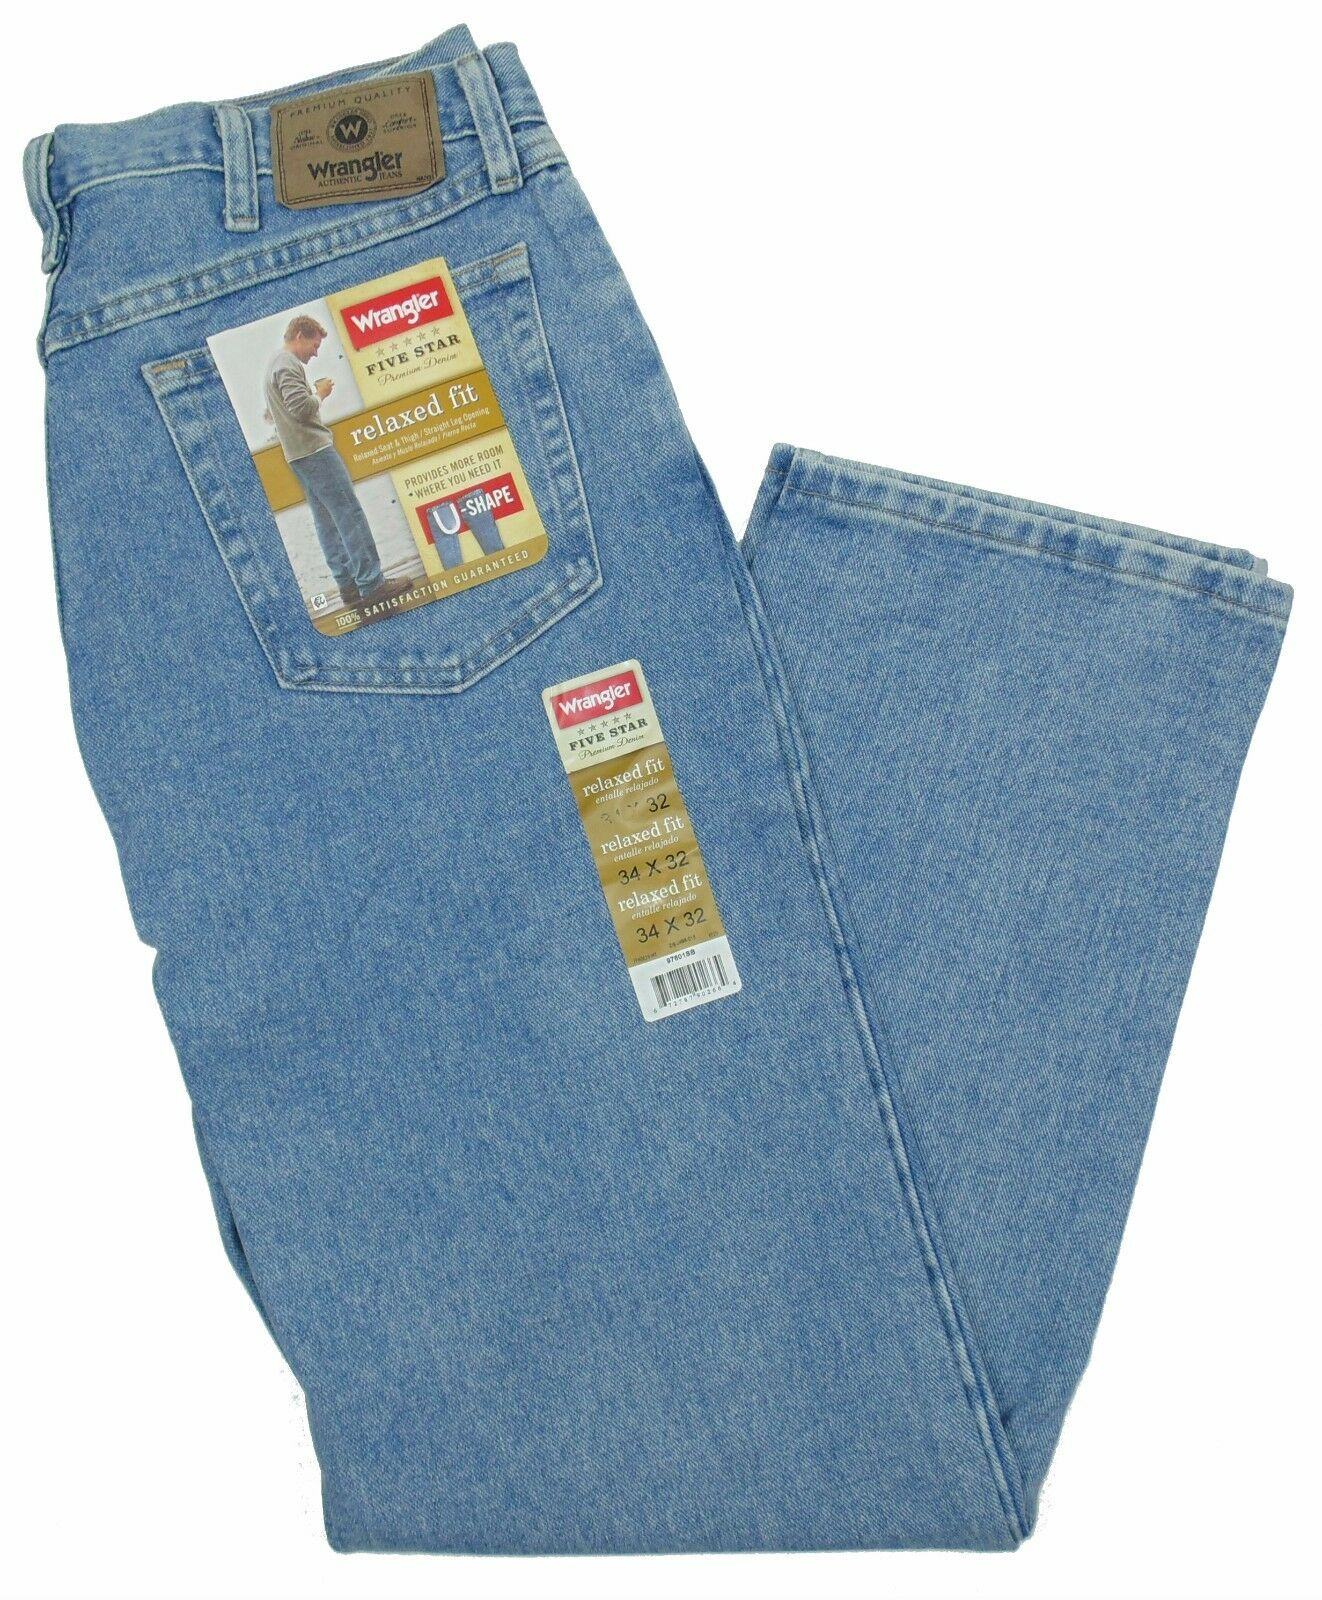 6d920432 Wrangler Jeans Relaxed Fit Mens Size 32 X 34 Stone Bleach ZIPPER Fly ...